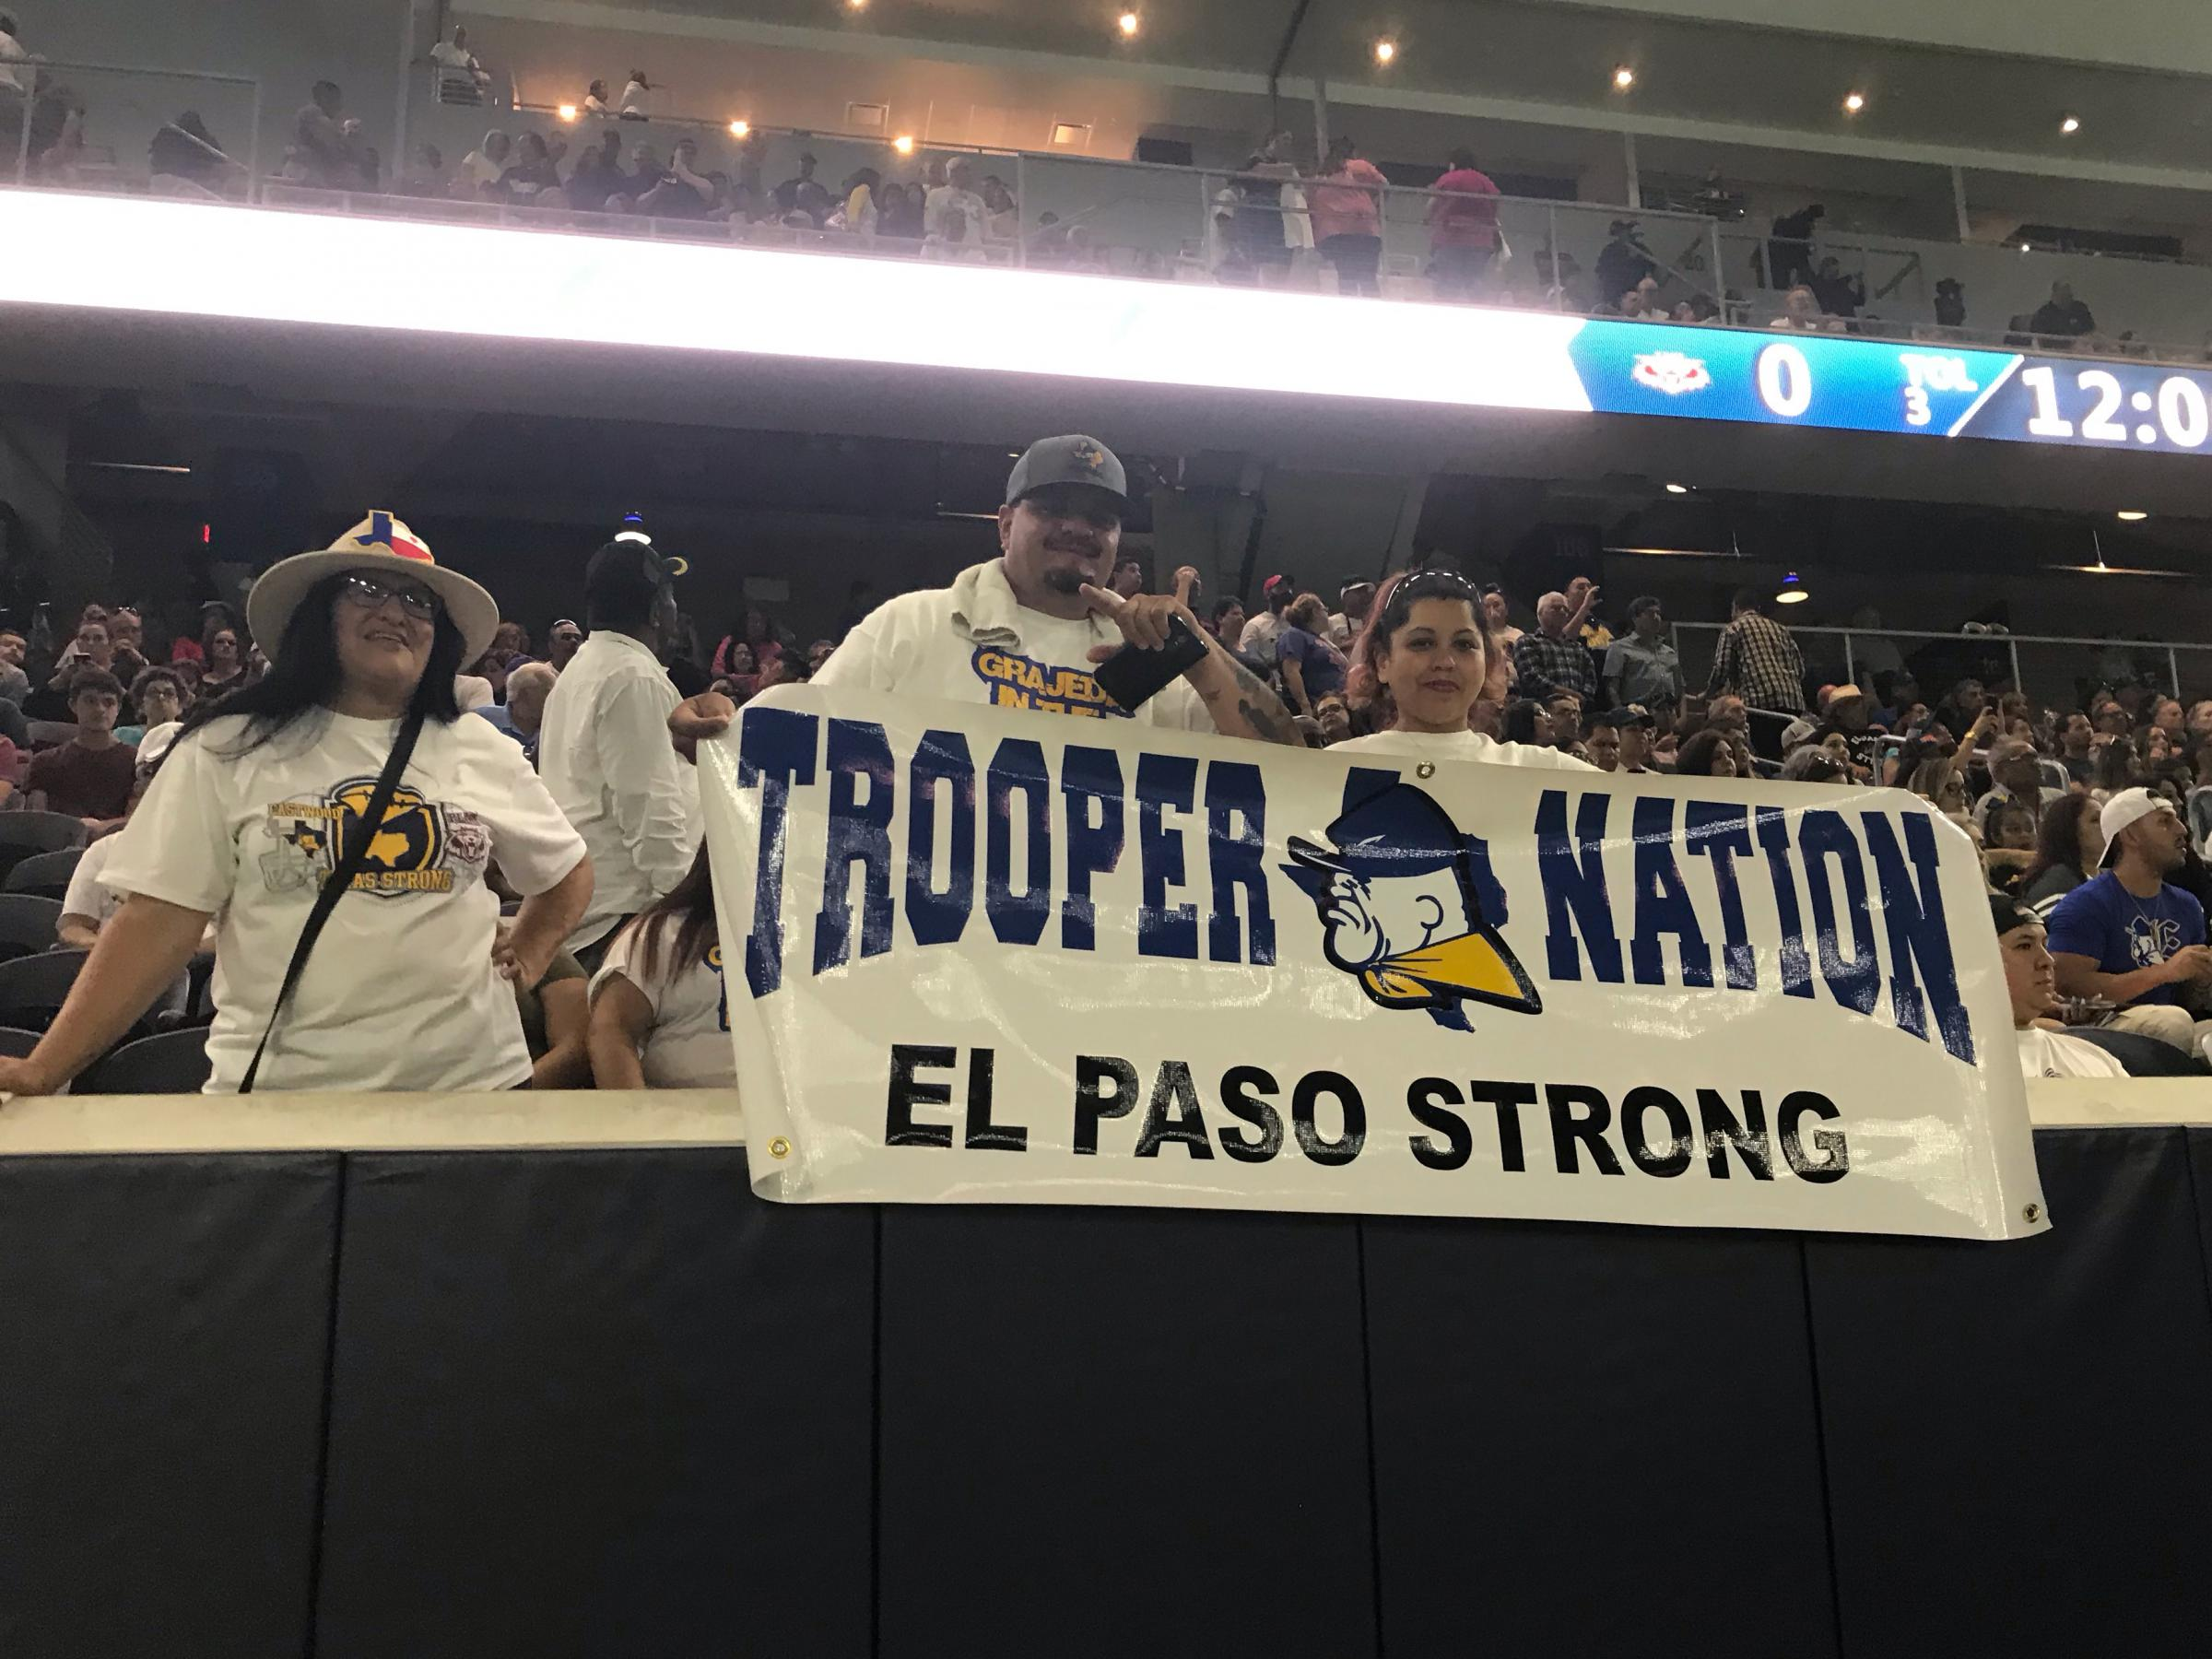 El Paso-Plano Football Game Highlights Unity Over Fear